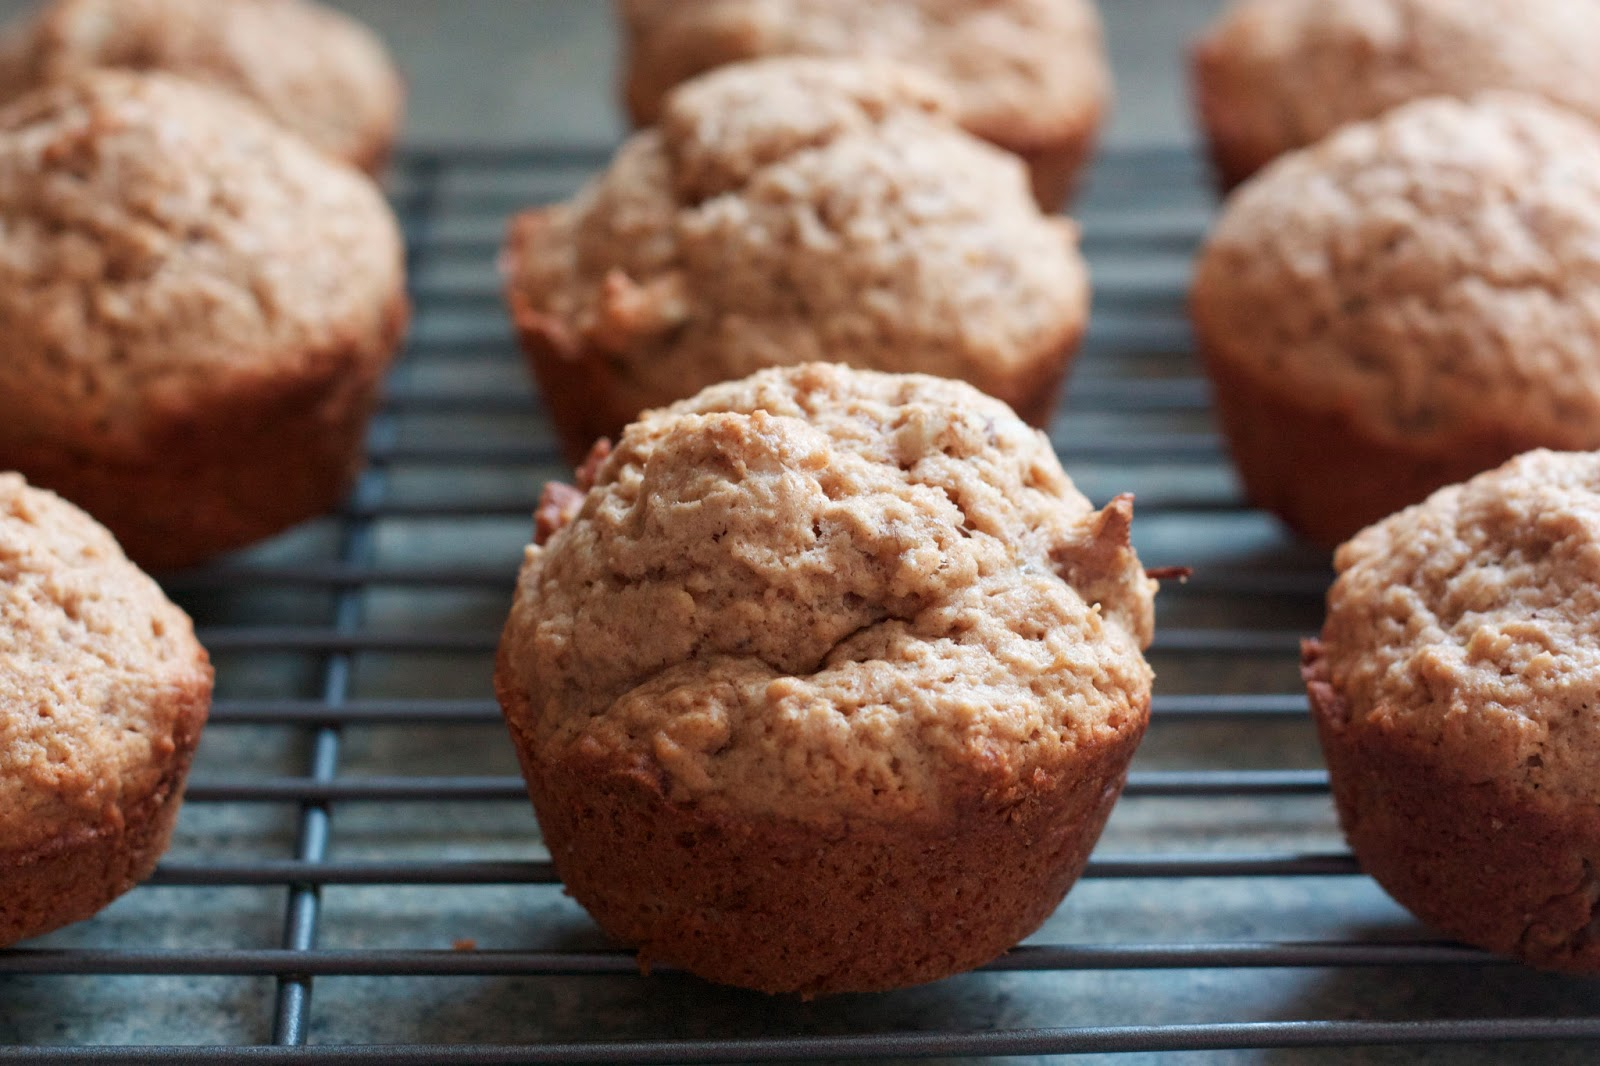 Zaaberry: Coconut Banana Nut Muffin RECIPE